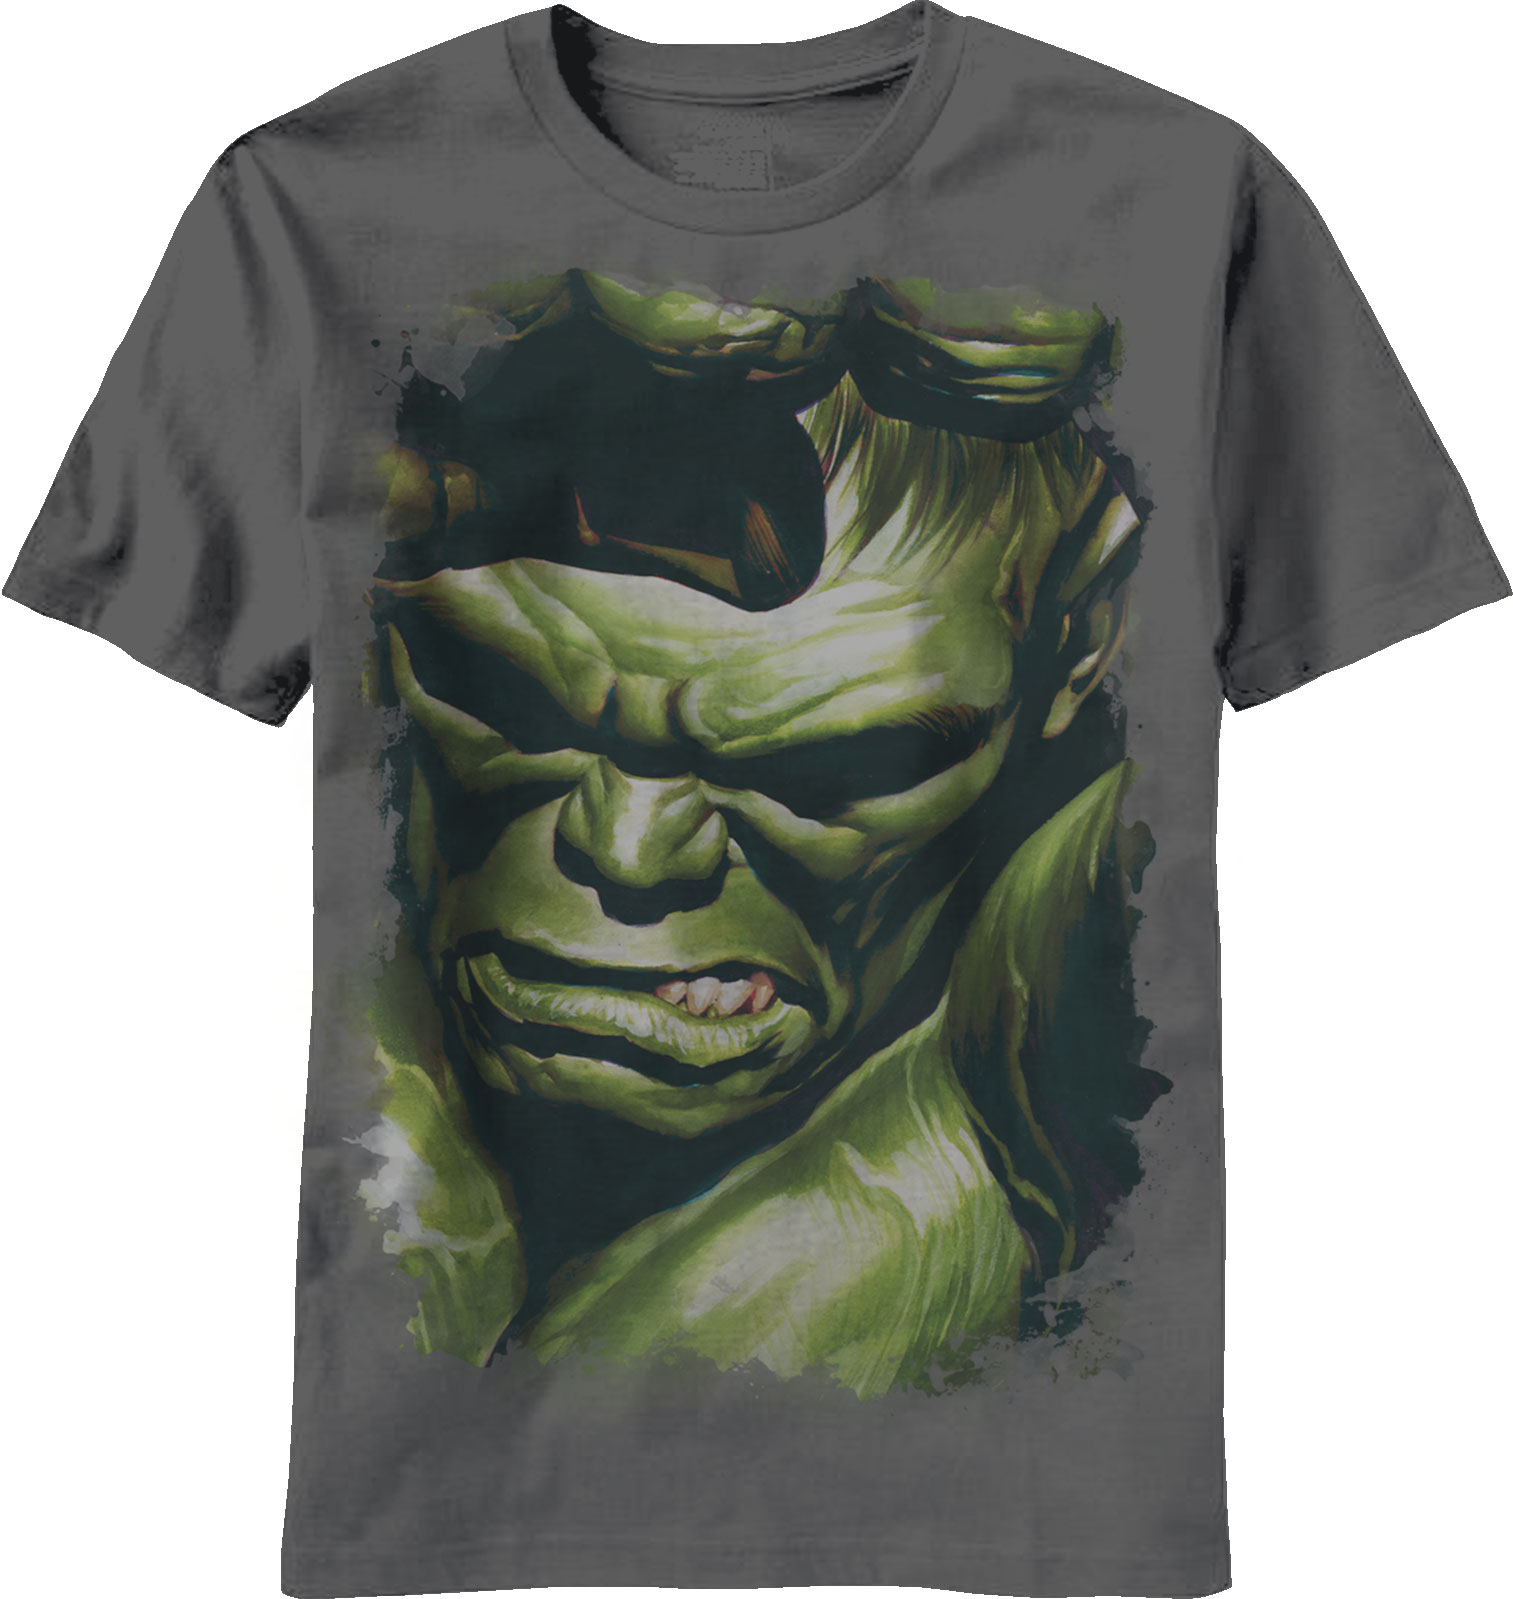 Marvel Incredible Hulk Grimace 75th Anniversary Adult T-Shirt